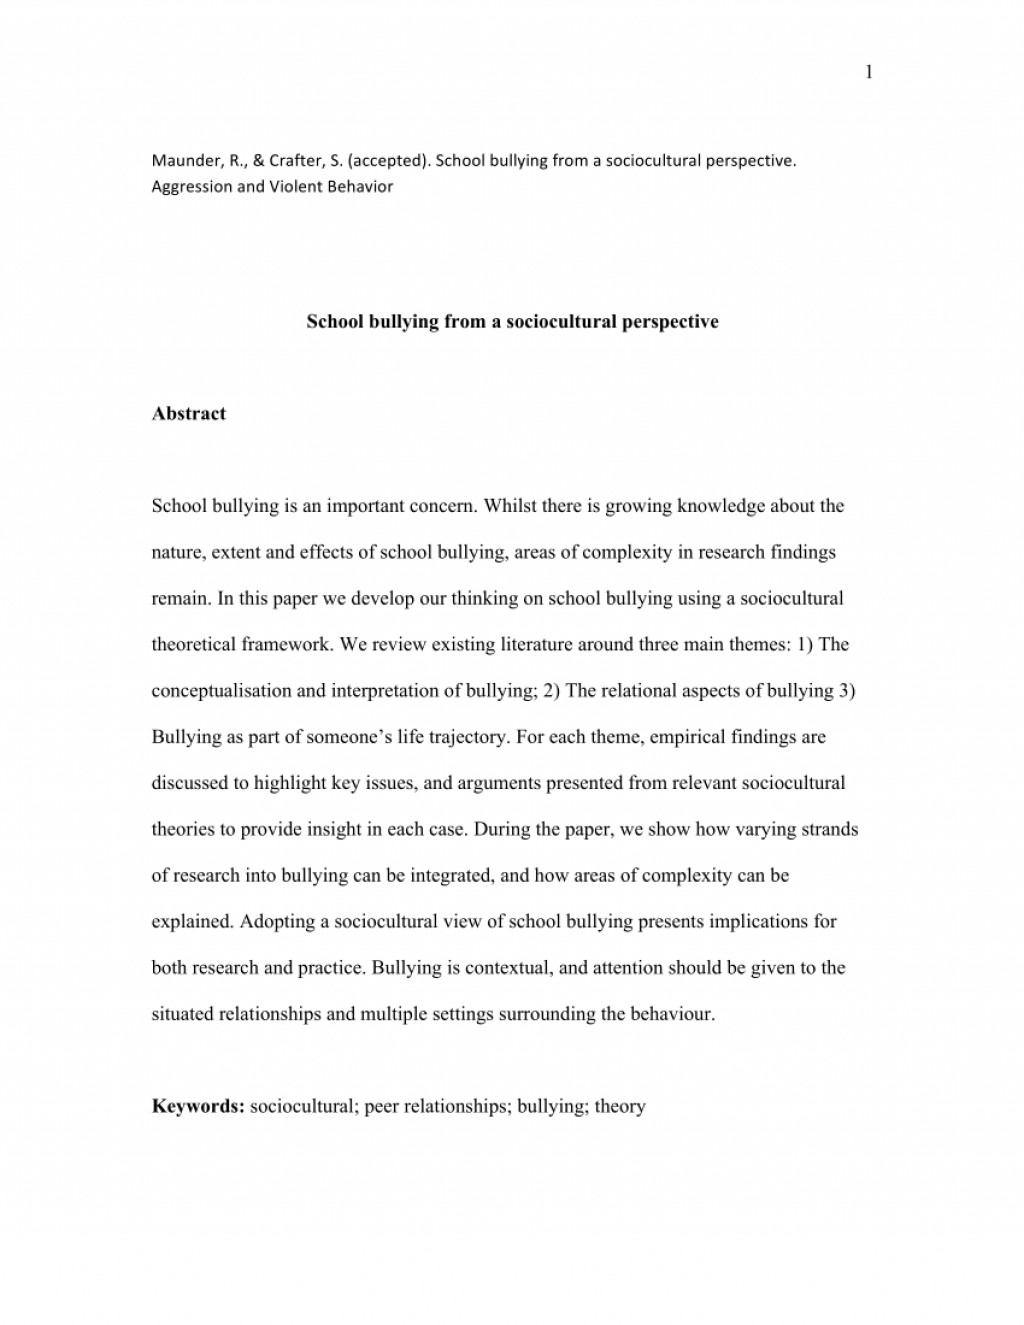 001 Research Paper Abstract About Bullying Formidable Large